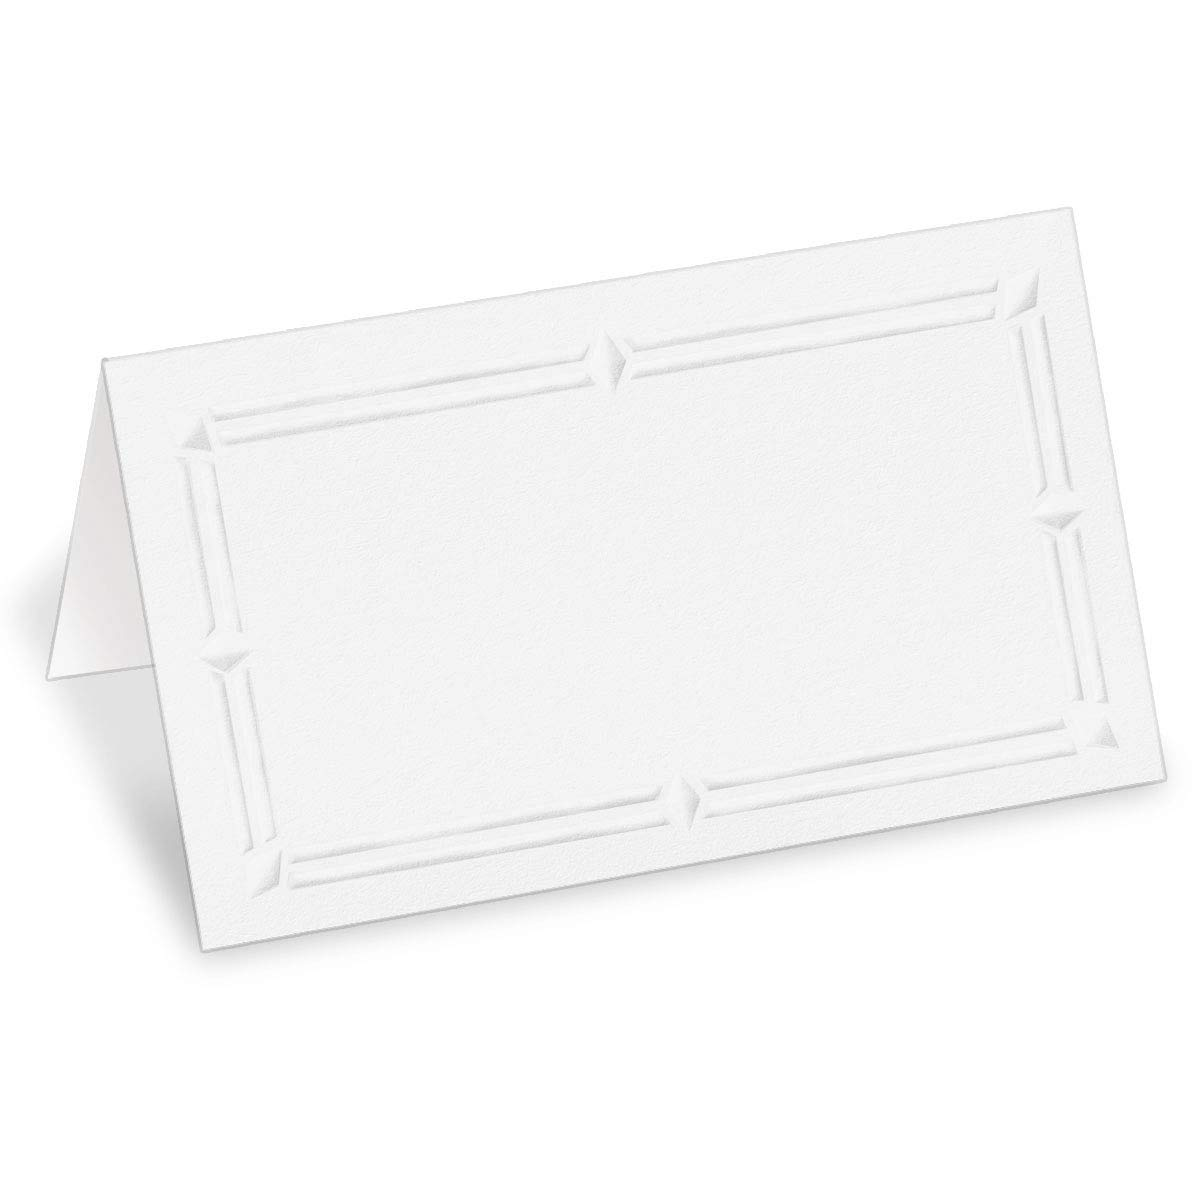 PaperDirect 38lb White Cover Stock Folded Place Cards with White Foil Border, Micro-Perforated, 2'' x 3 1/2'', 100/pack, Laser and Inkjet Compatible by PaperDirect